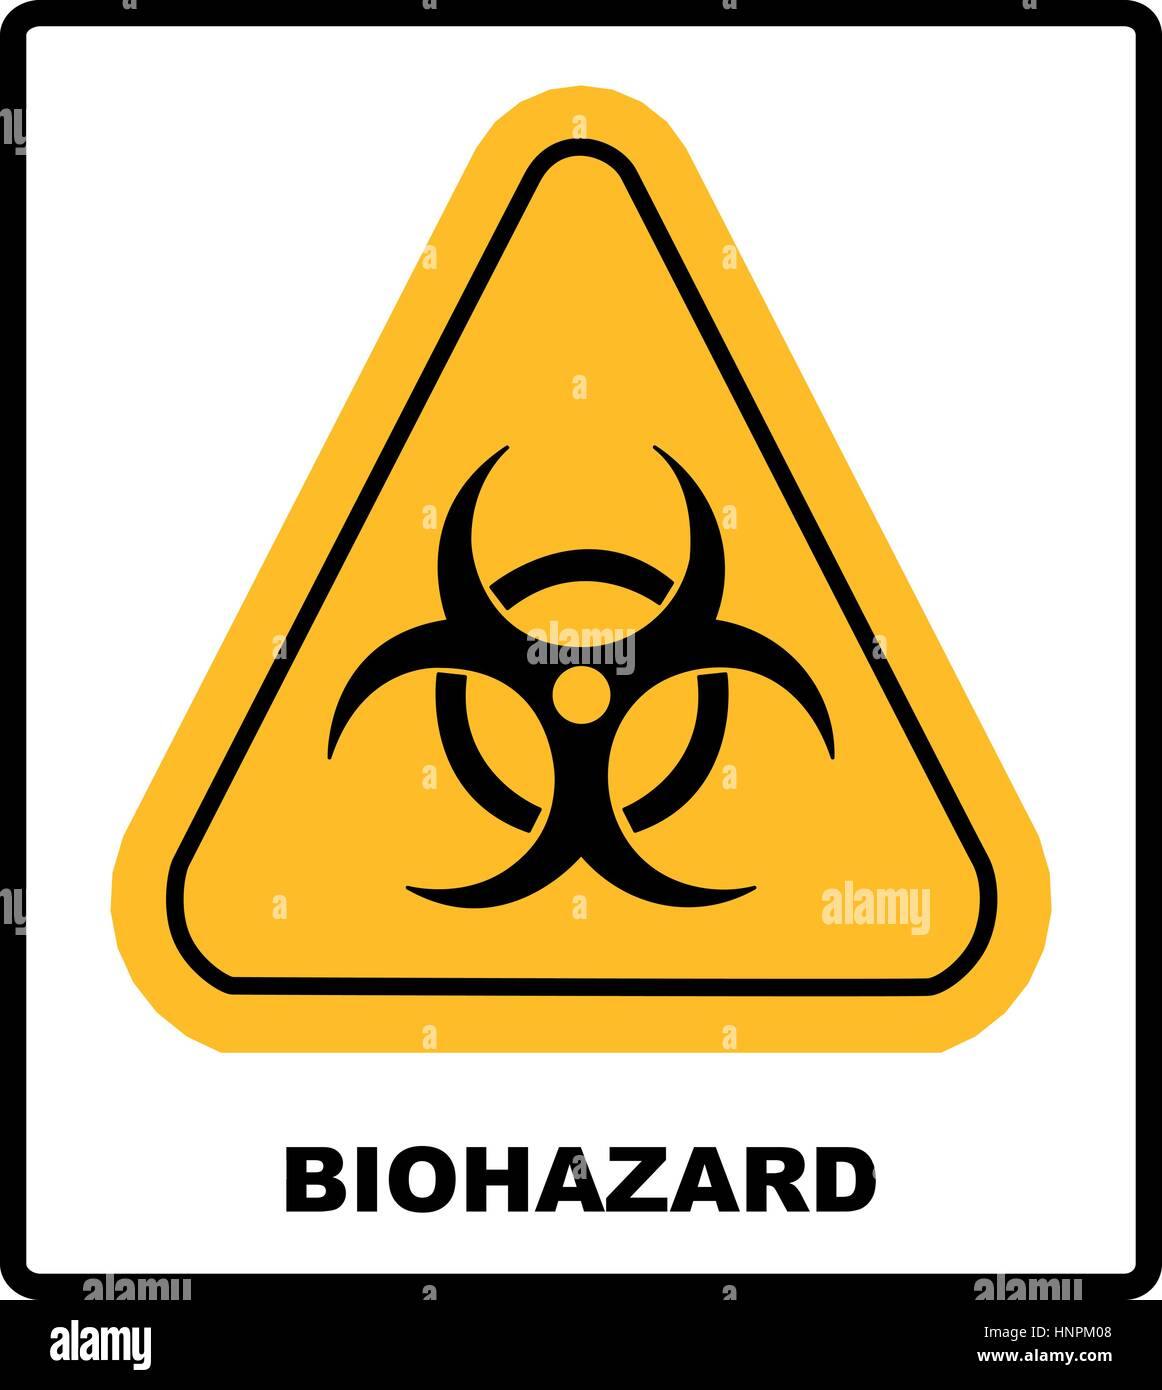 Biohazard symbol sign of biological threat alert vector sign in biohazard symbol sign of biological threat alert vector sign in yellow triangle banner with text biocorpaavc Image collections